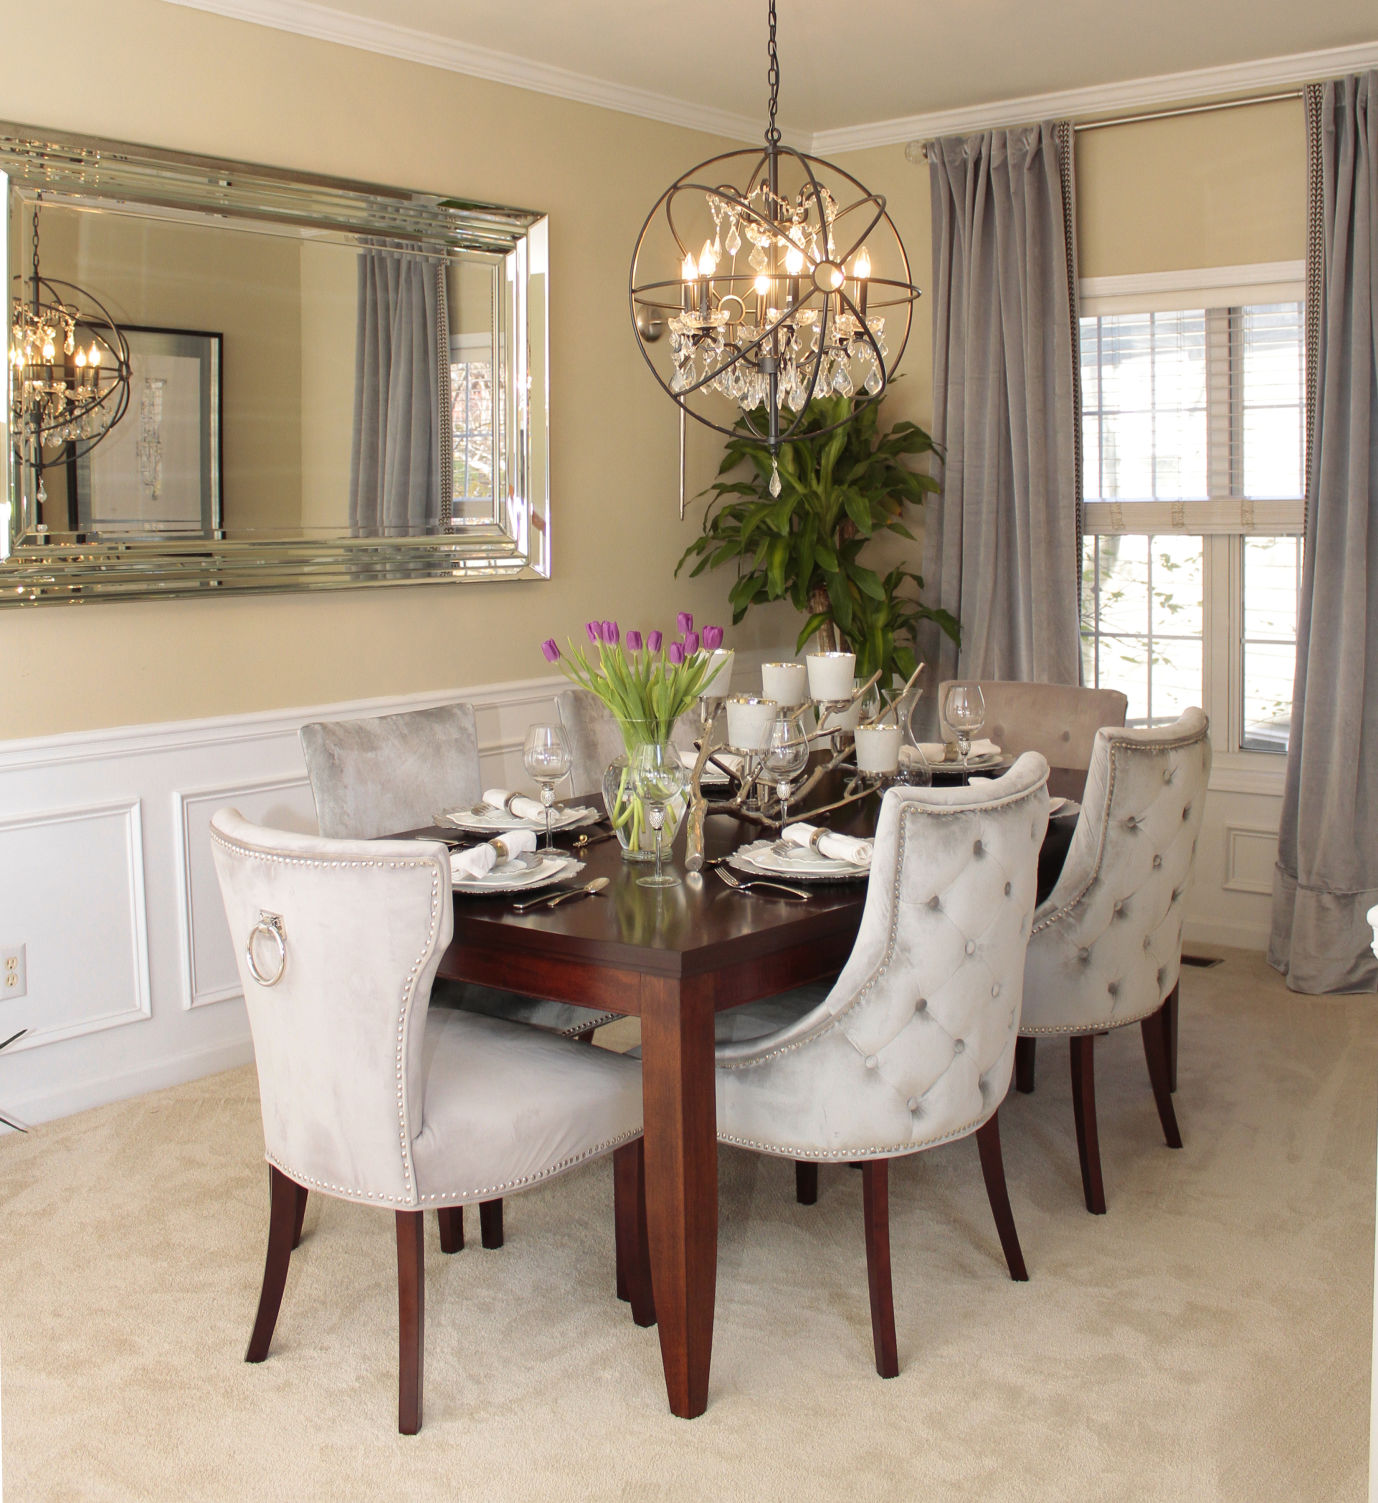 New life changes turned this dining room from beige to bling Cobb